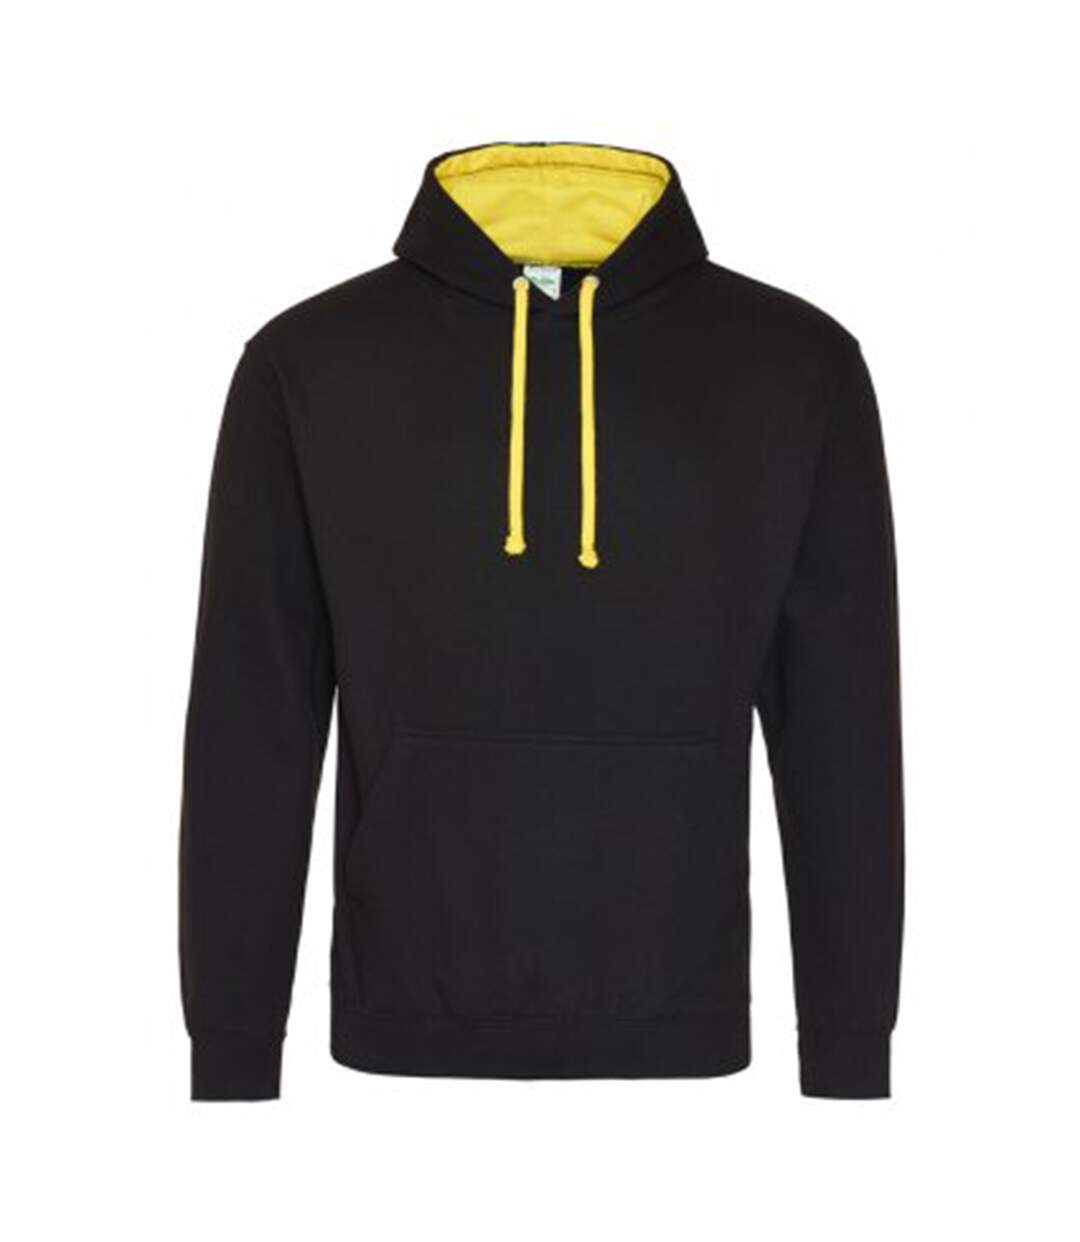 Awdis Varsity Hooded Sweatshirt / Hoodie (Jet Black/ Sun Yellow) - UTRW165